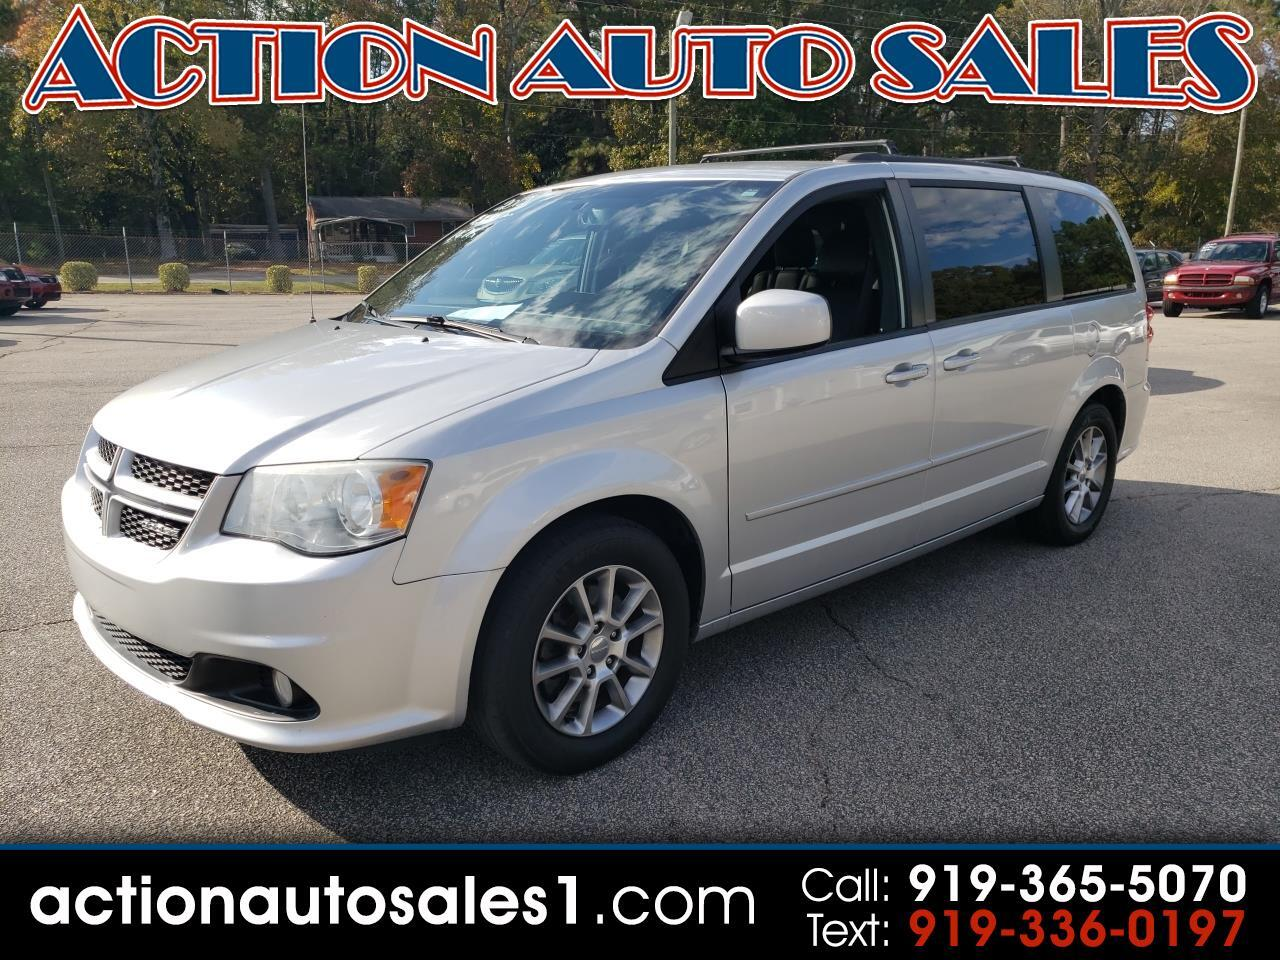 2012 Dodge Grand Caravan 4dr Wgn R/T